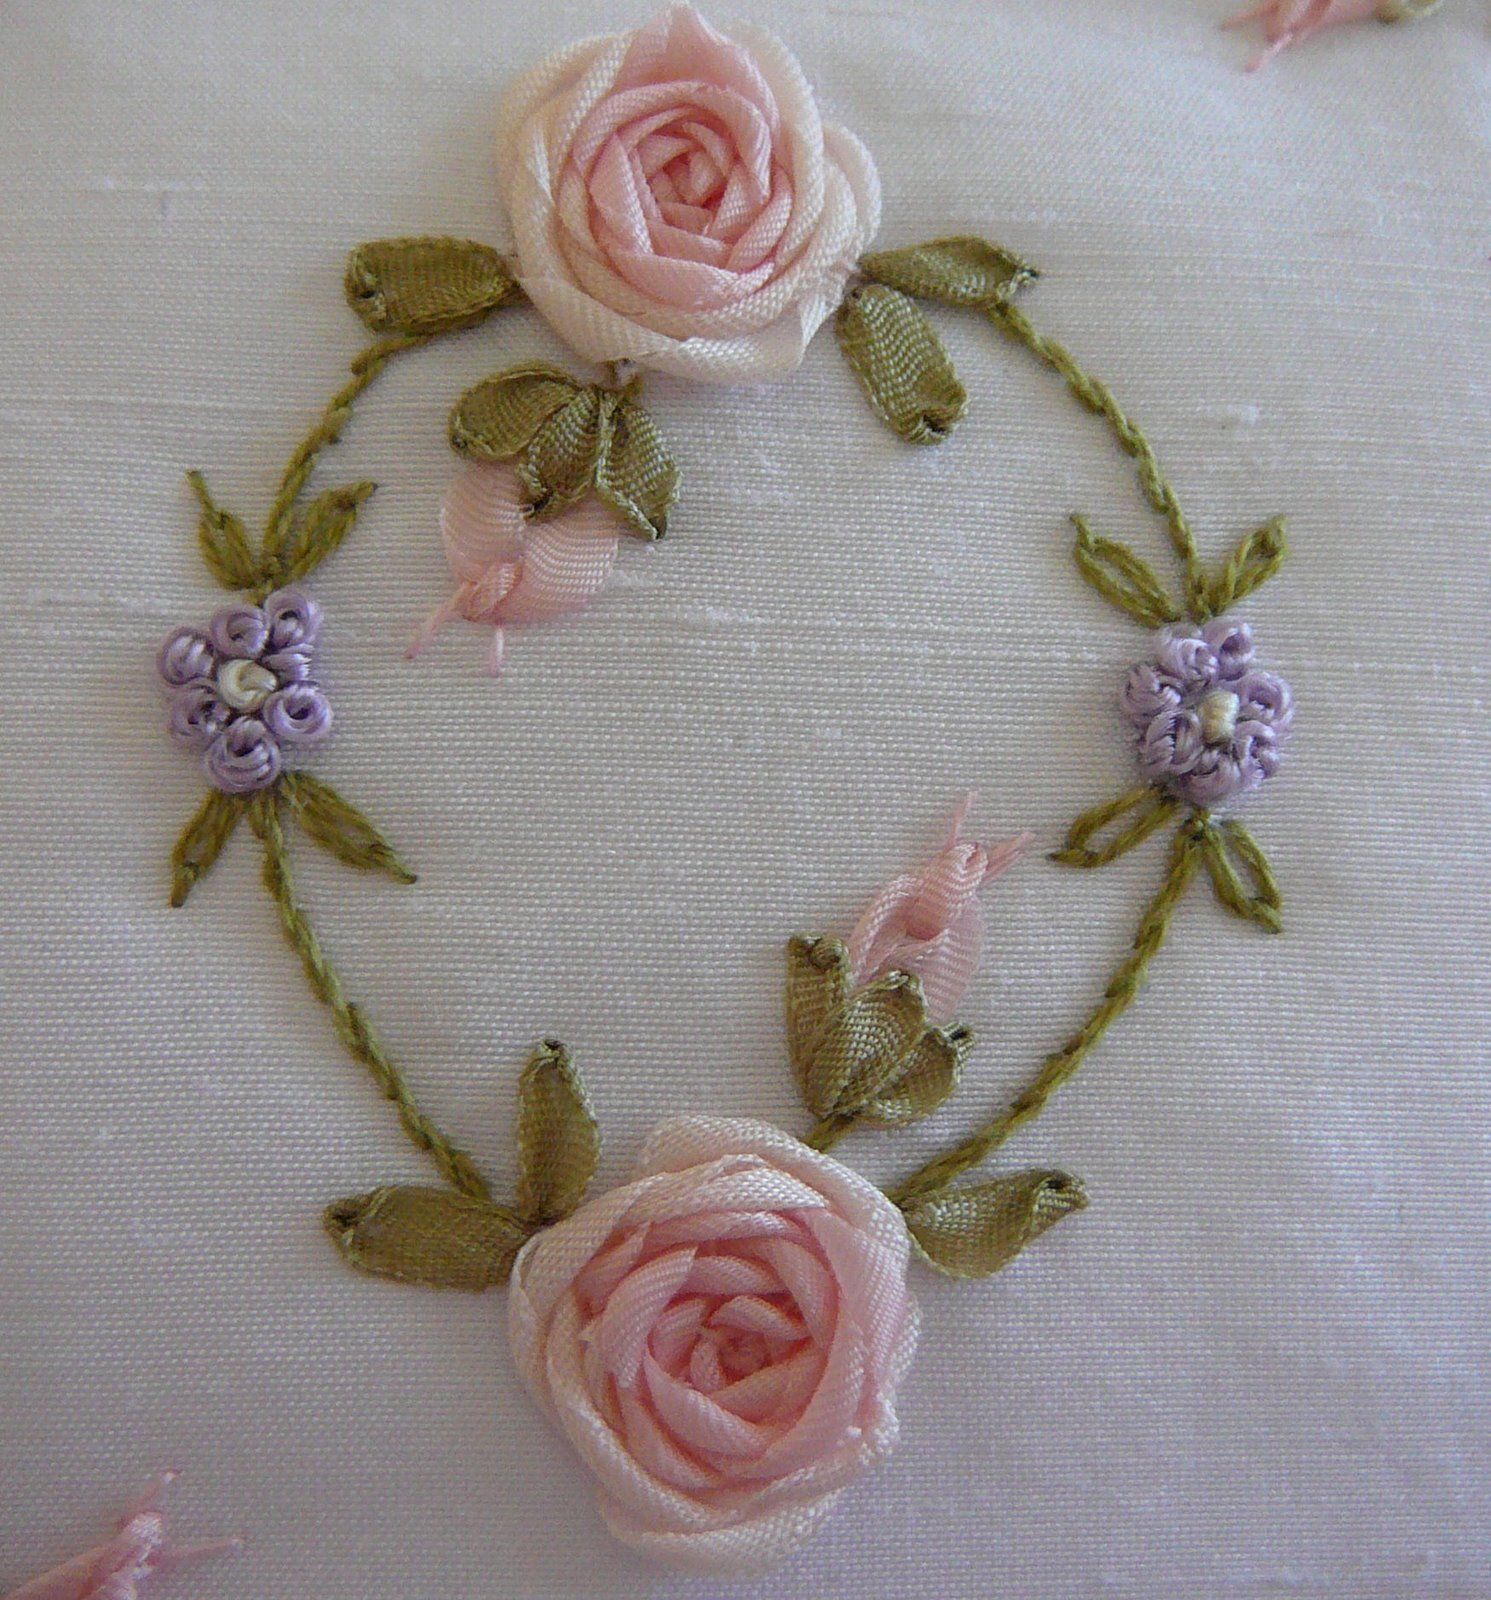 Silk Ribbon Embroidery Tutorial - Spider Web Rose   BABY   Pinterest   Ribbon Embroidery ...